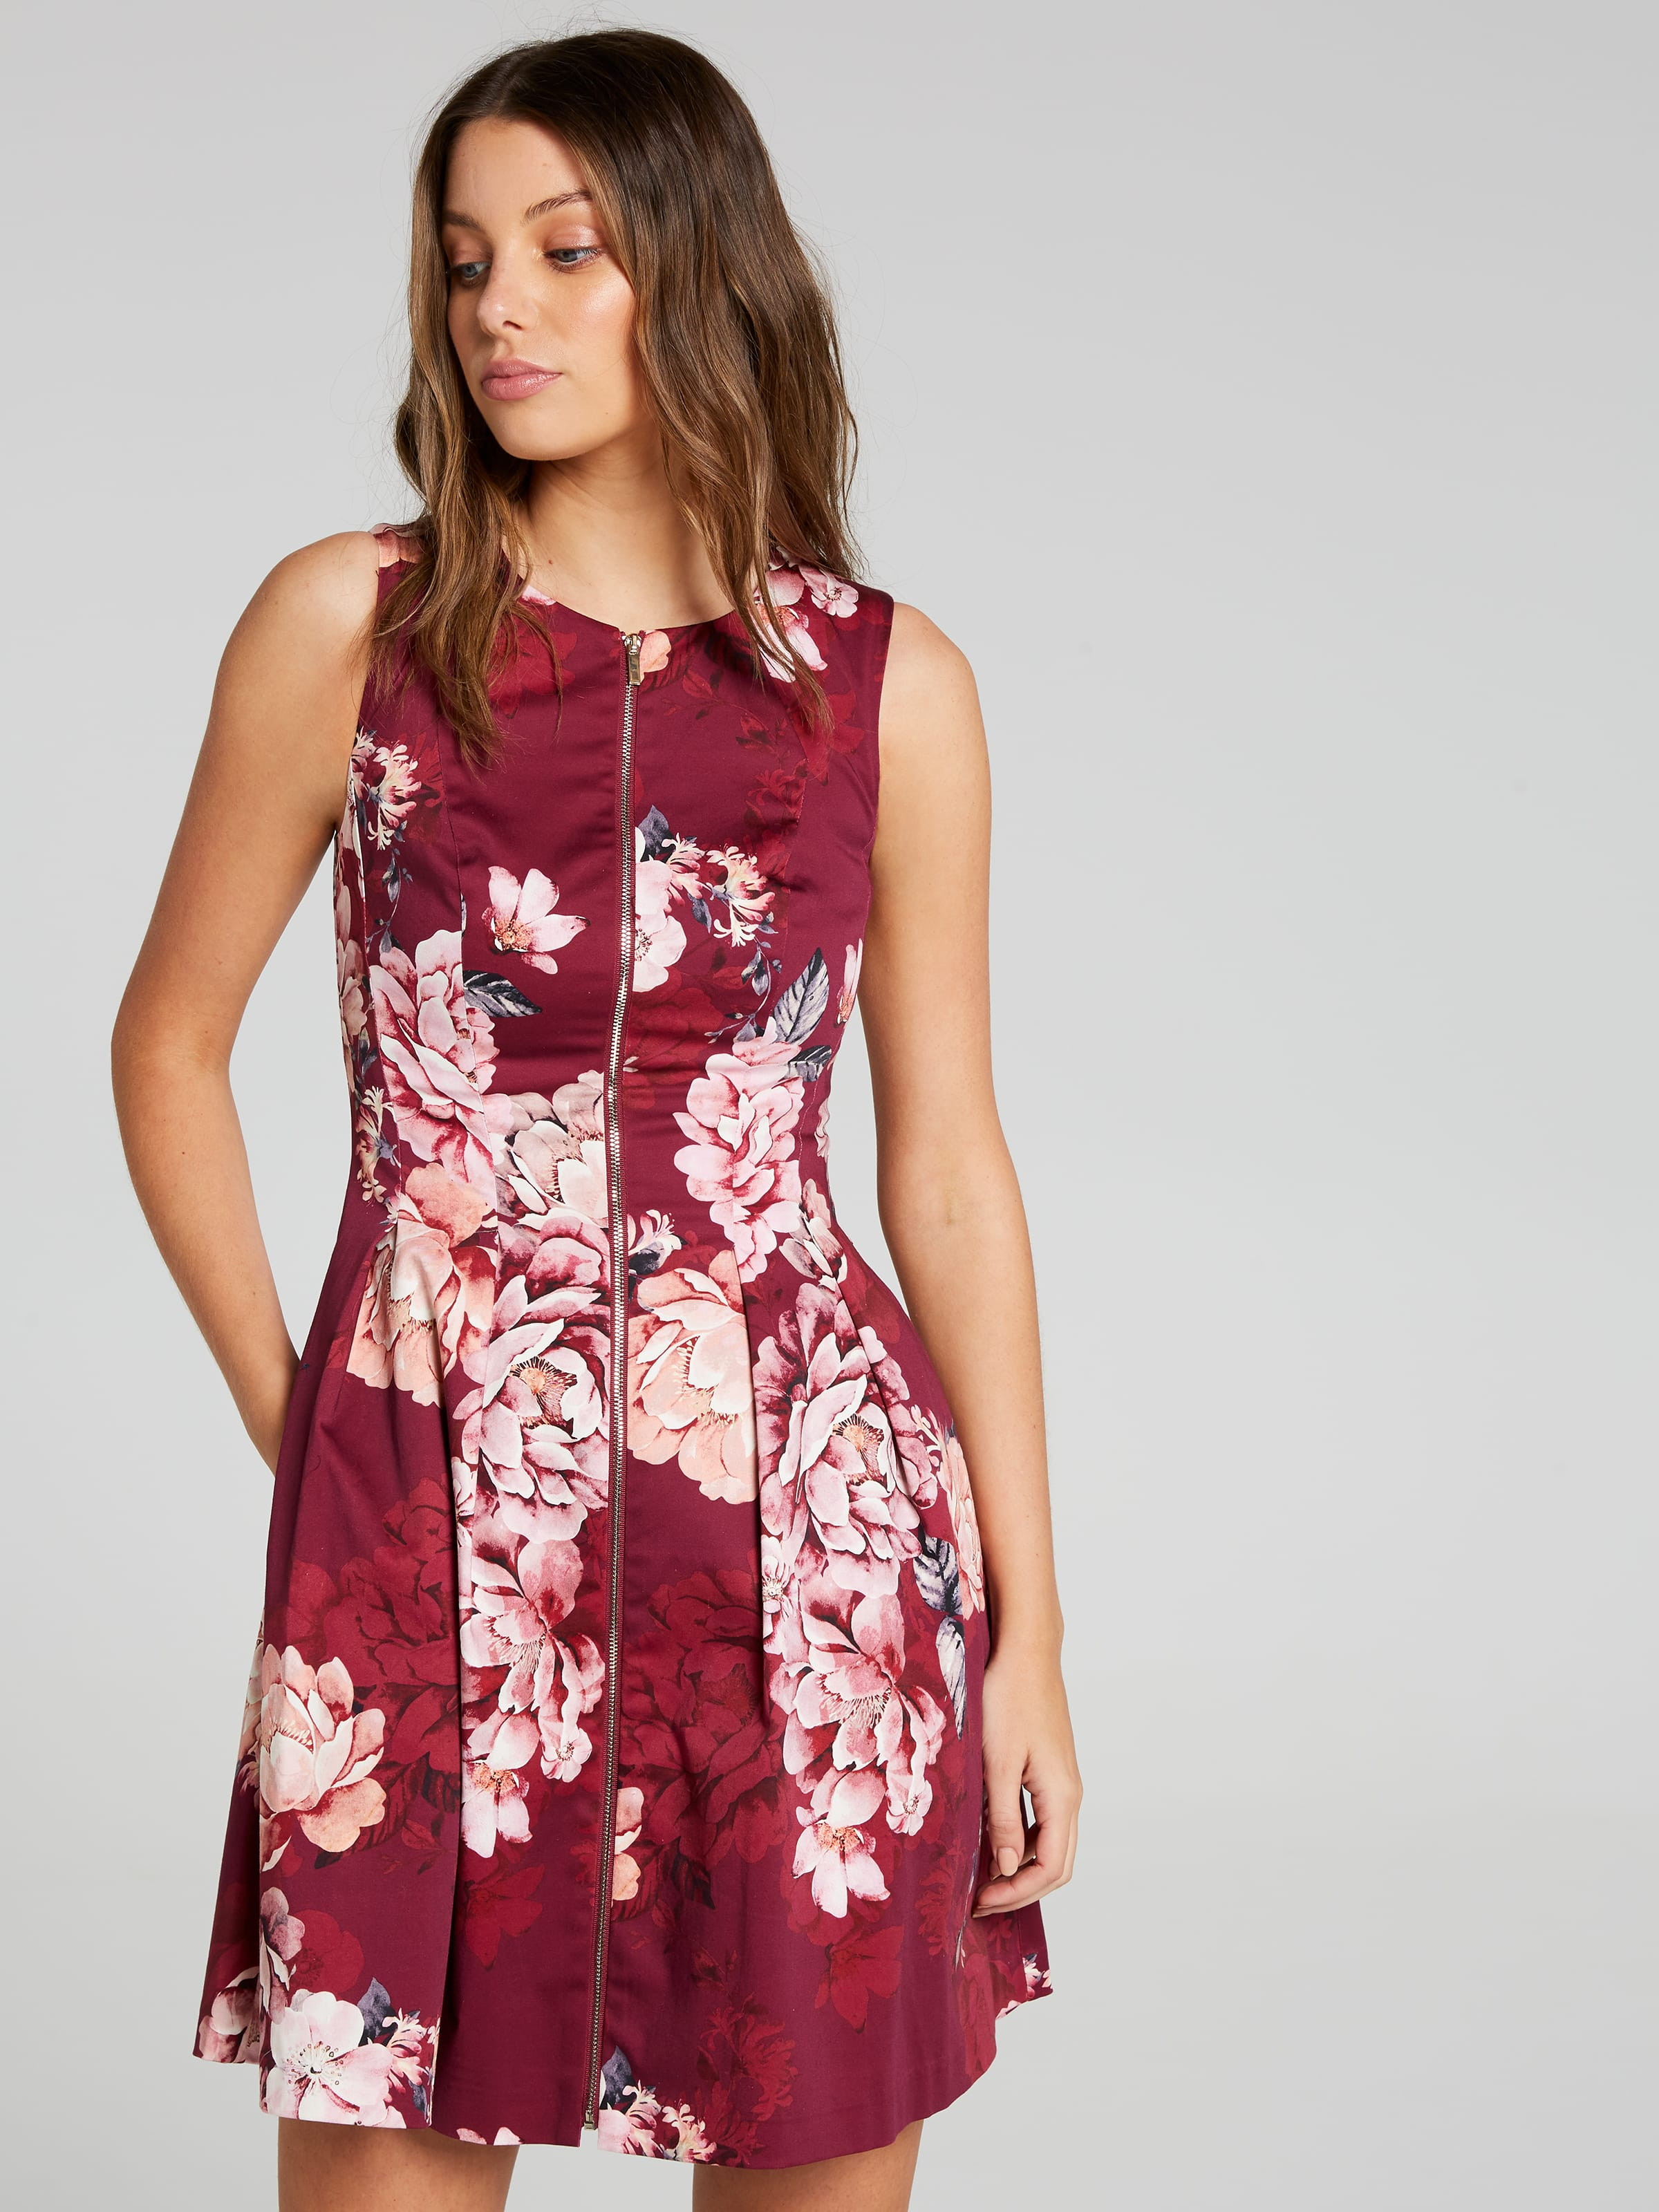 In Full Bloom Fit & Flare Dress